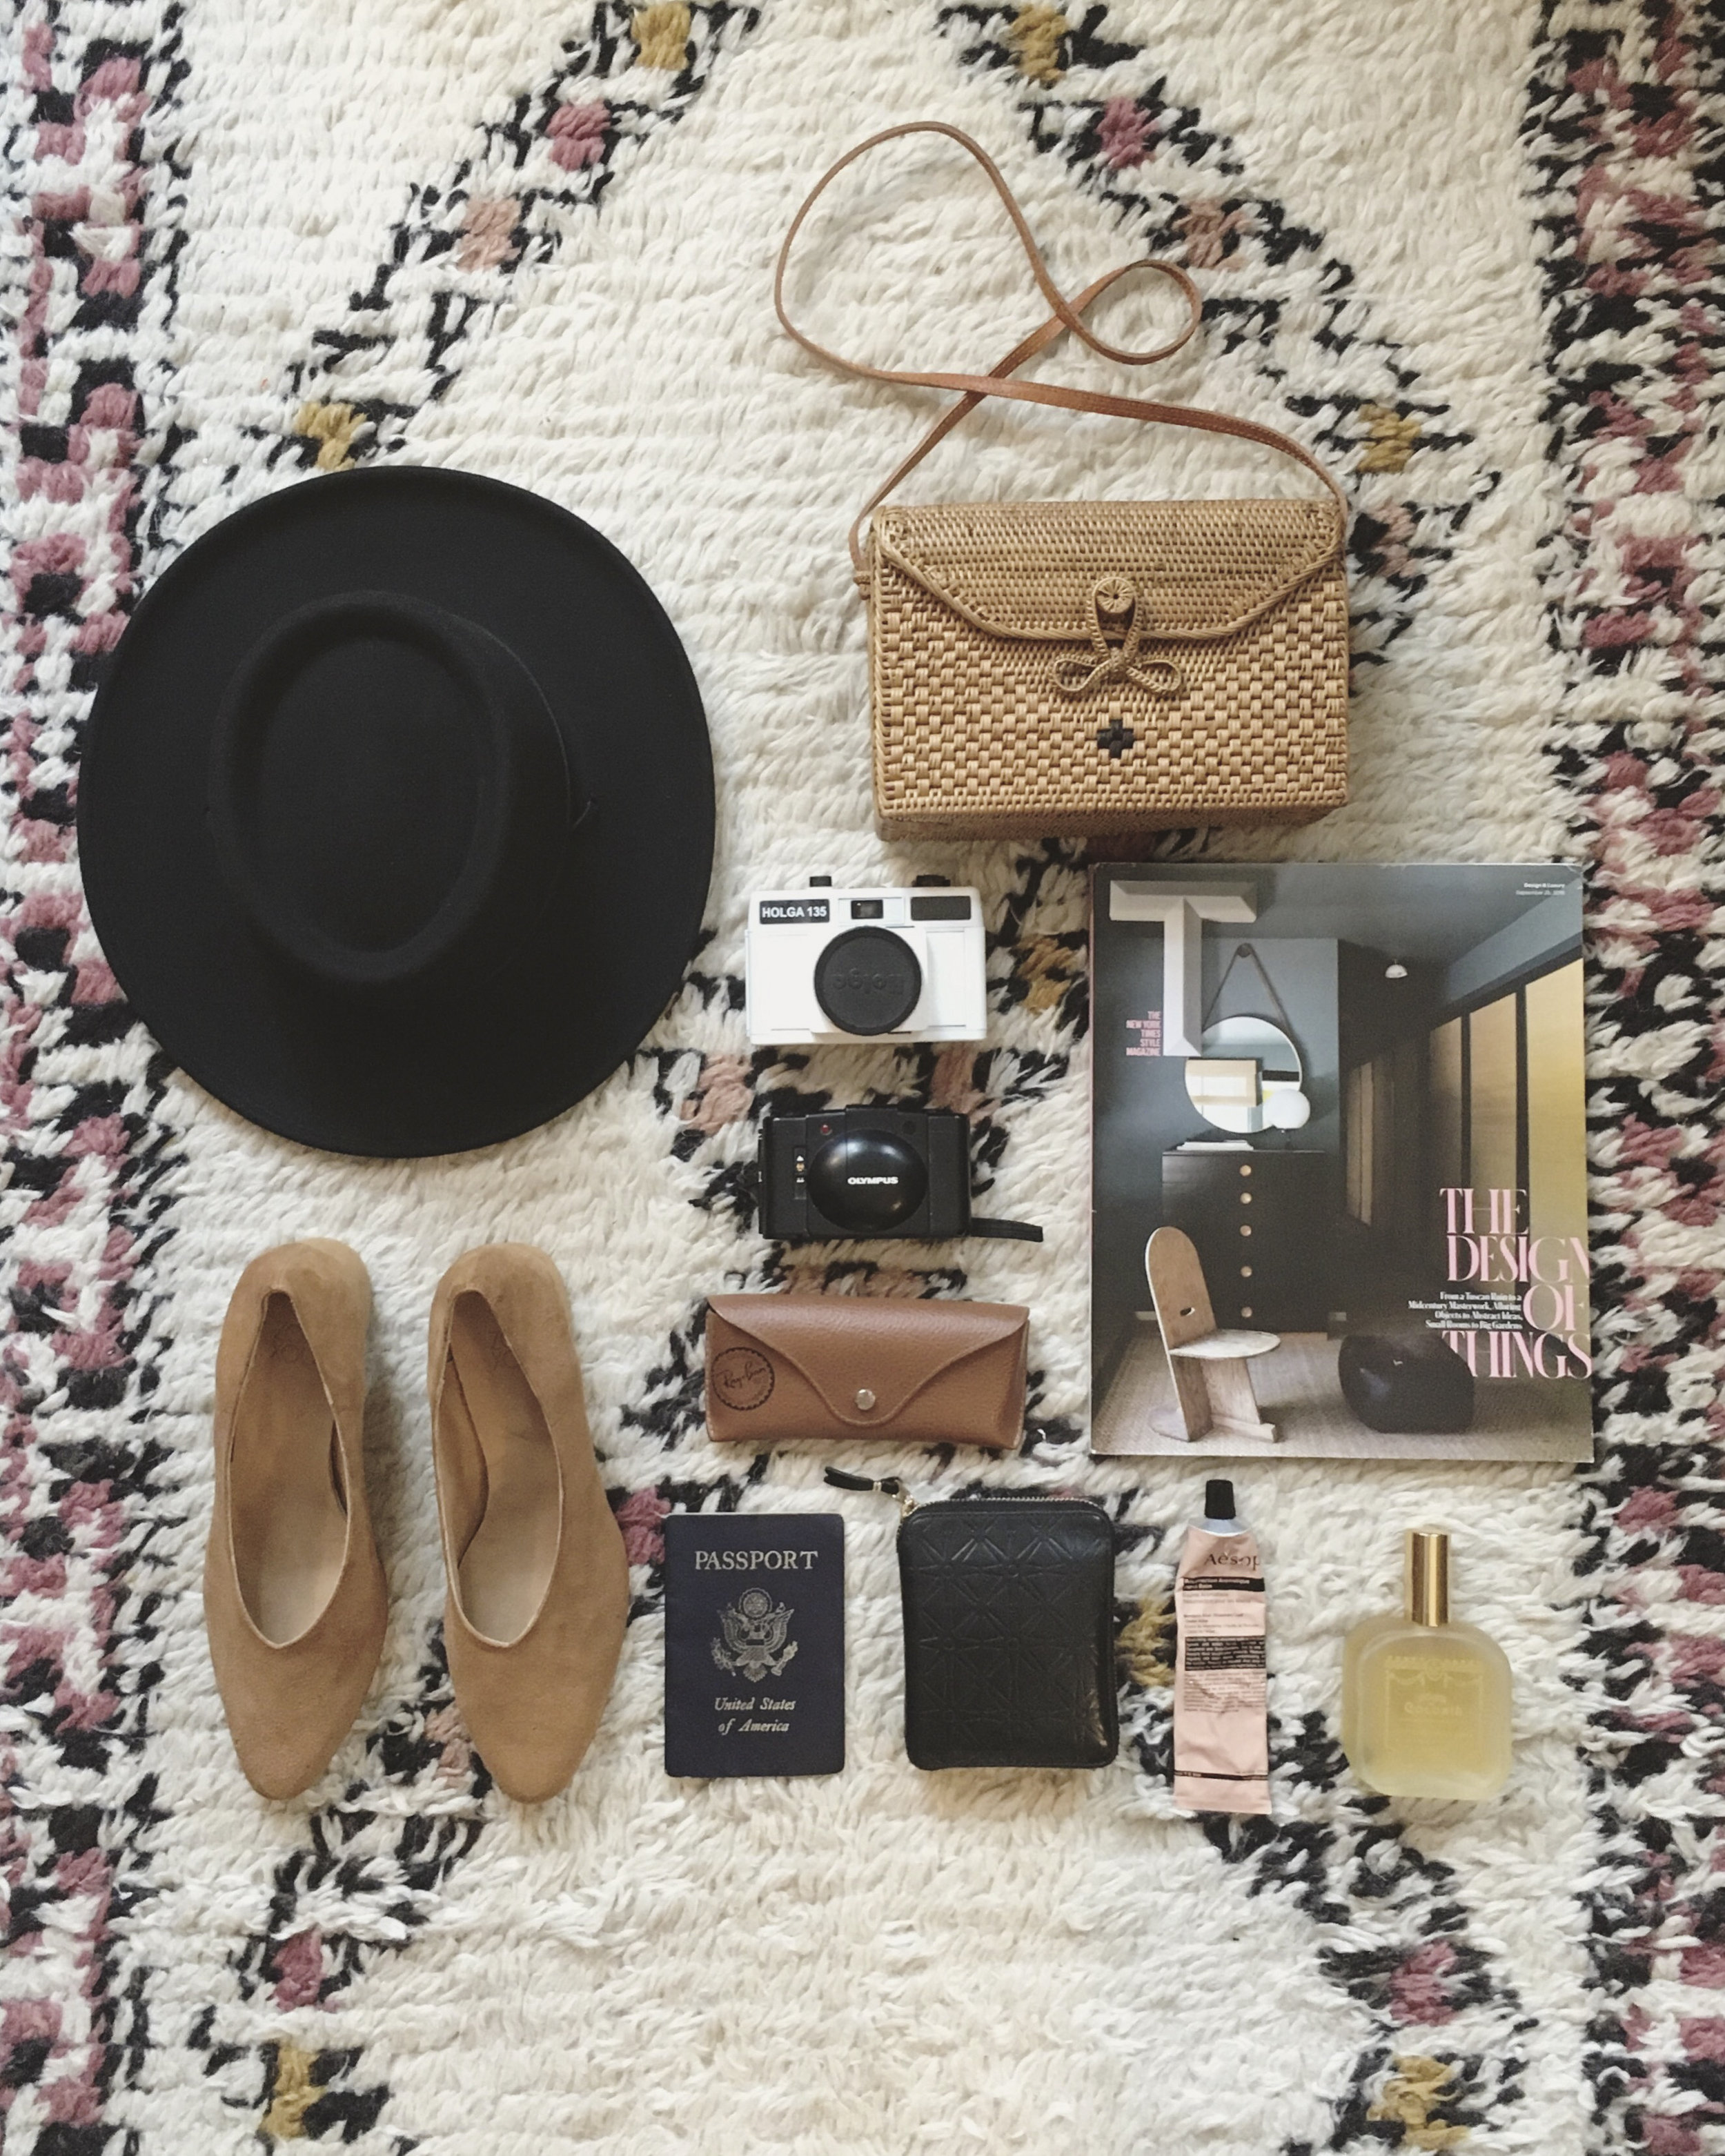 Destination:Naples, Florida - Packing Essentials: 1) Tio y Tia Gambler hat for feeling like Georgia O'Keeffe, 2) Bembien Sofia bag because it's the perfect size for all my essentials and it's woven, which makes it perfect for warm-weather adventures, 3-4) two different film cameras because in my dreams I'm a legit photographer, 5) T Magazine because it's the best way to kill time on a flight, 6) Ray-Ban sunglasses because sun, 7) Aesop hand lotion: all-in-one aromatherapy and moisturizer, 8) Santa Maria Novella perfume because it's exactly how I want to smell always, 9-10)wallet and passport (self-explanatory), and 10) last but not least Zou Xou Belu pumps (In dulce de leche suede) because they go with absolutely everything I own.